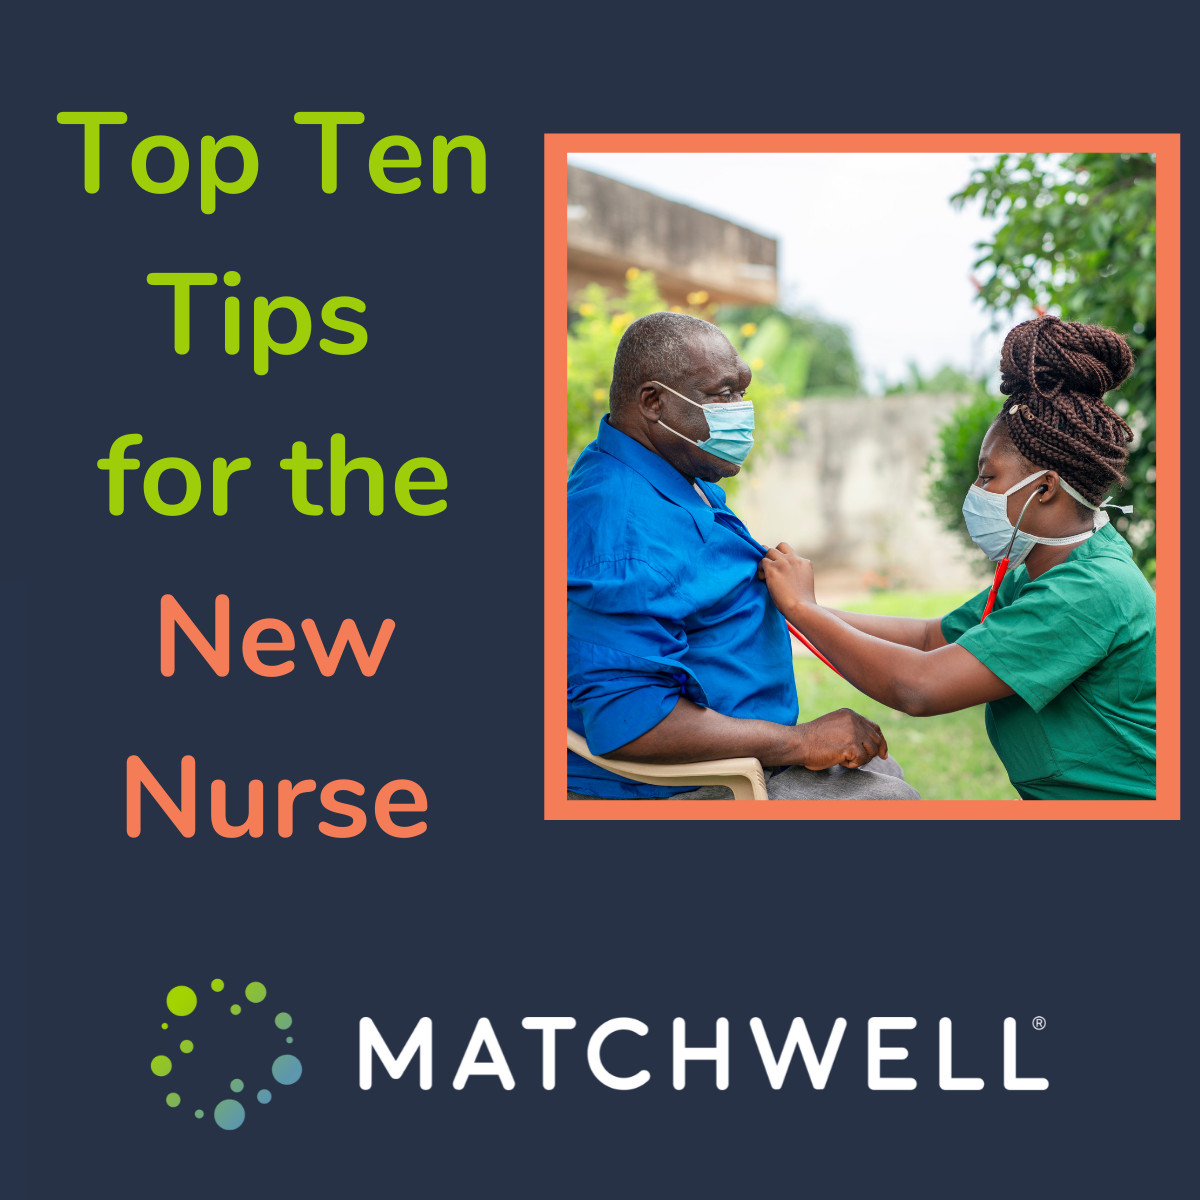 Top Ten Tips for the New Nurse - featured image